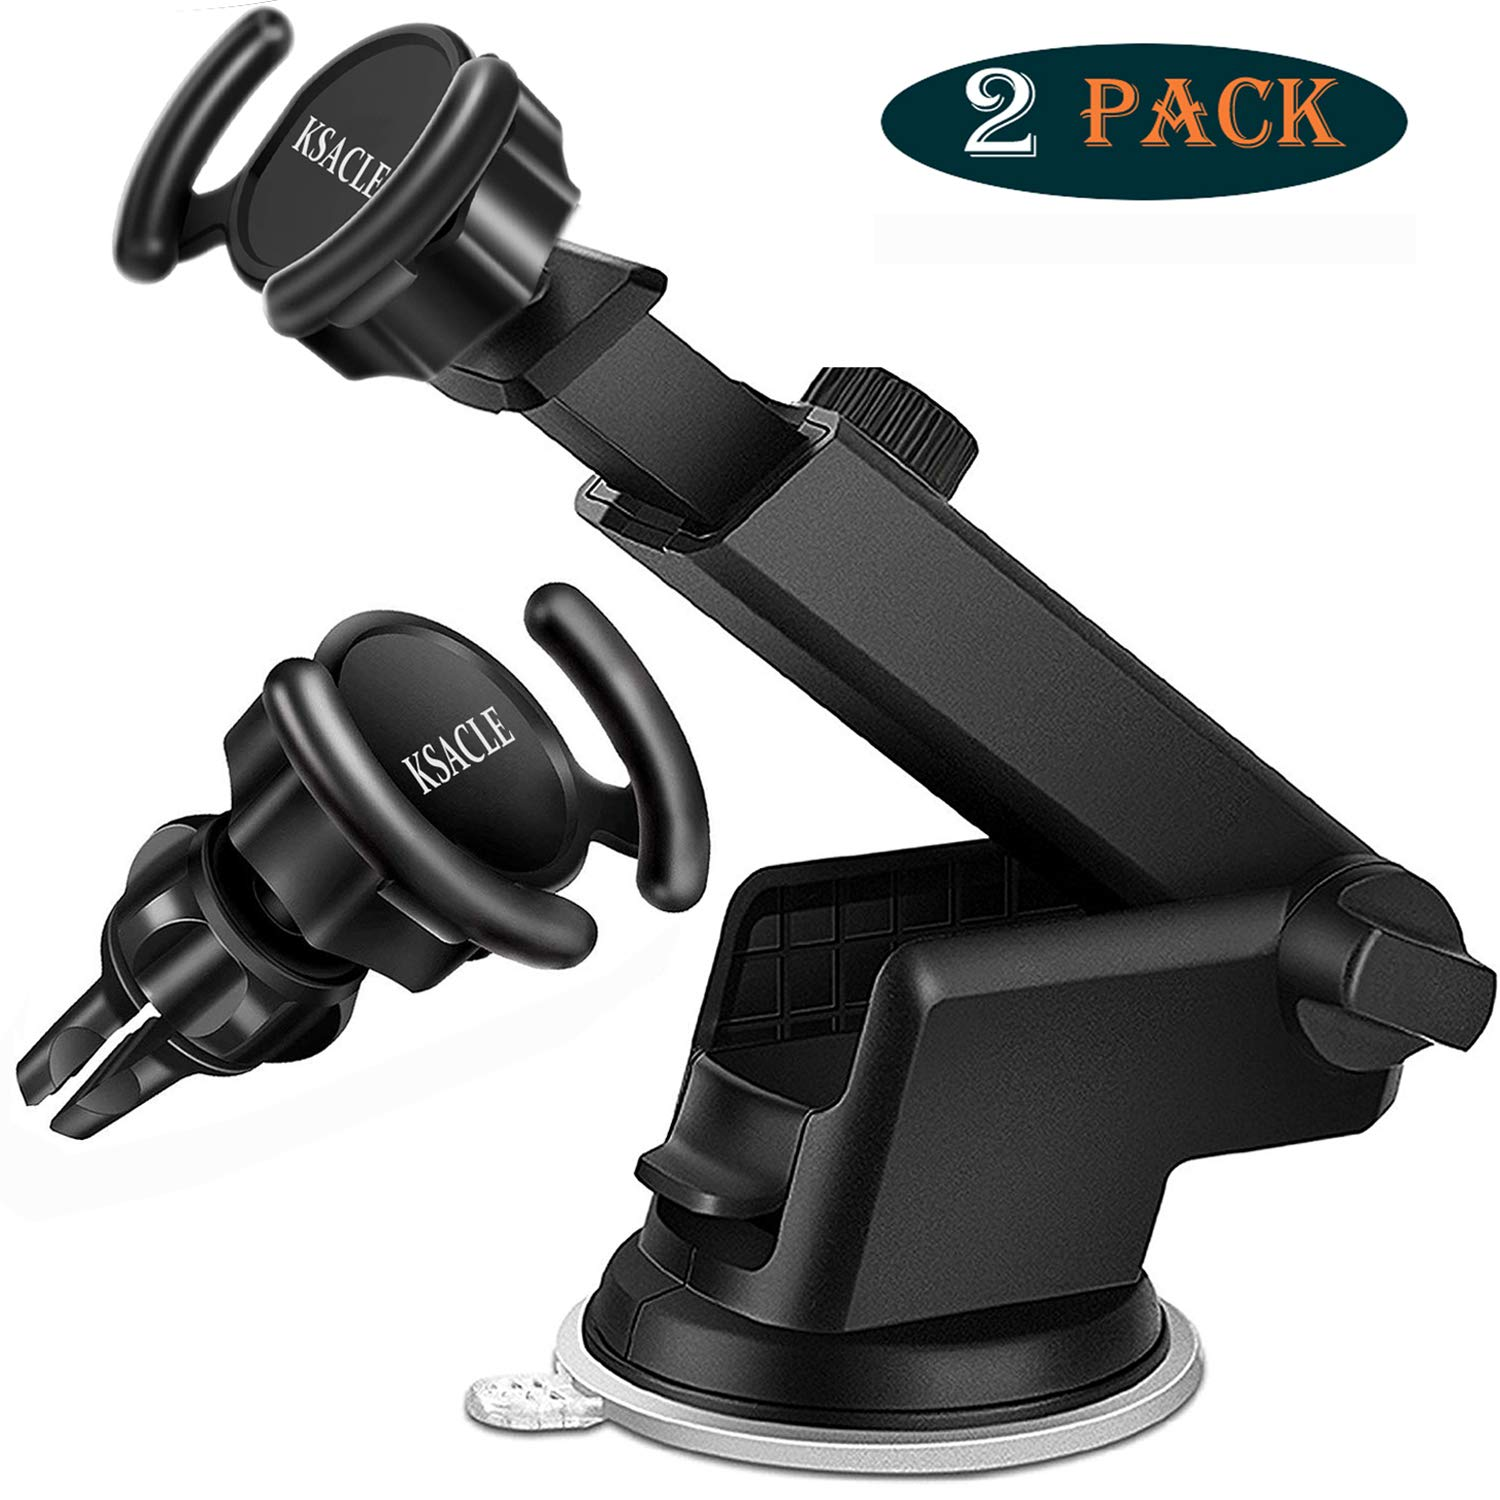 KSACLE Car Phone Mount, Phone Holder Pop Car Mount Air Vent Out Stand Car Mount, Universal Phone Holder for Car, 360 Degrees Dashboard Desk Wall Bracket for GPS Navigation and Any Smartphones